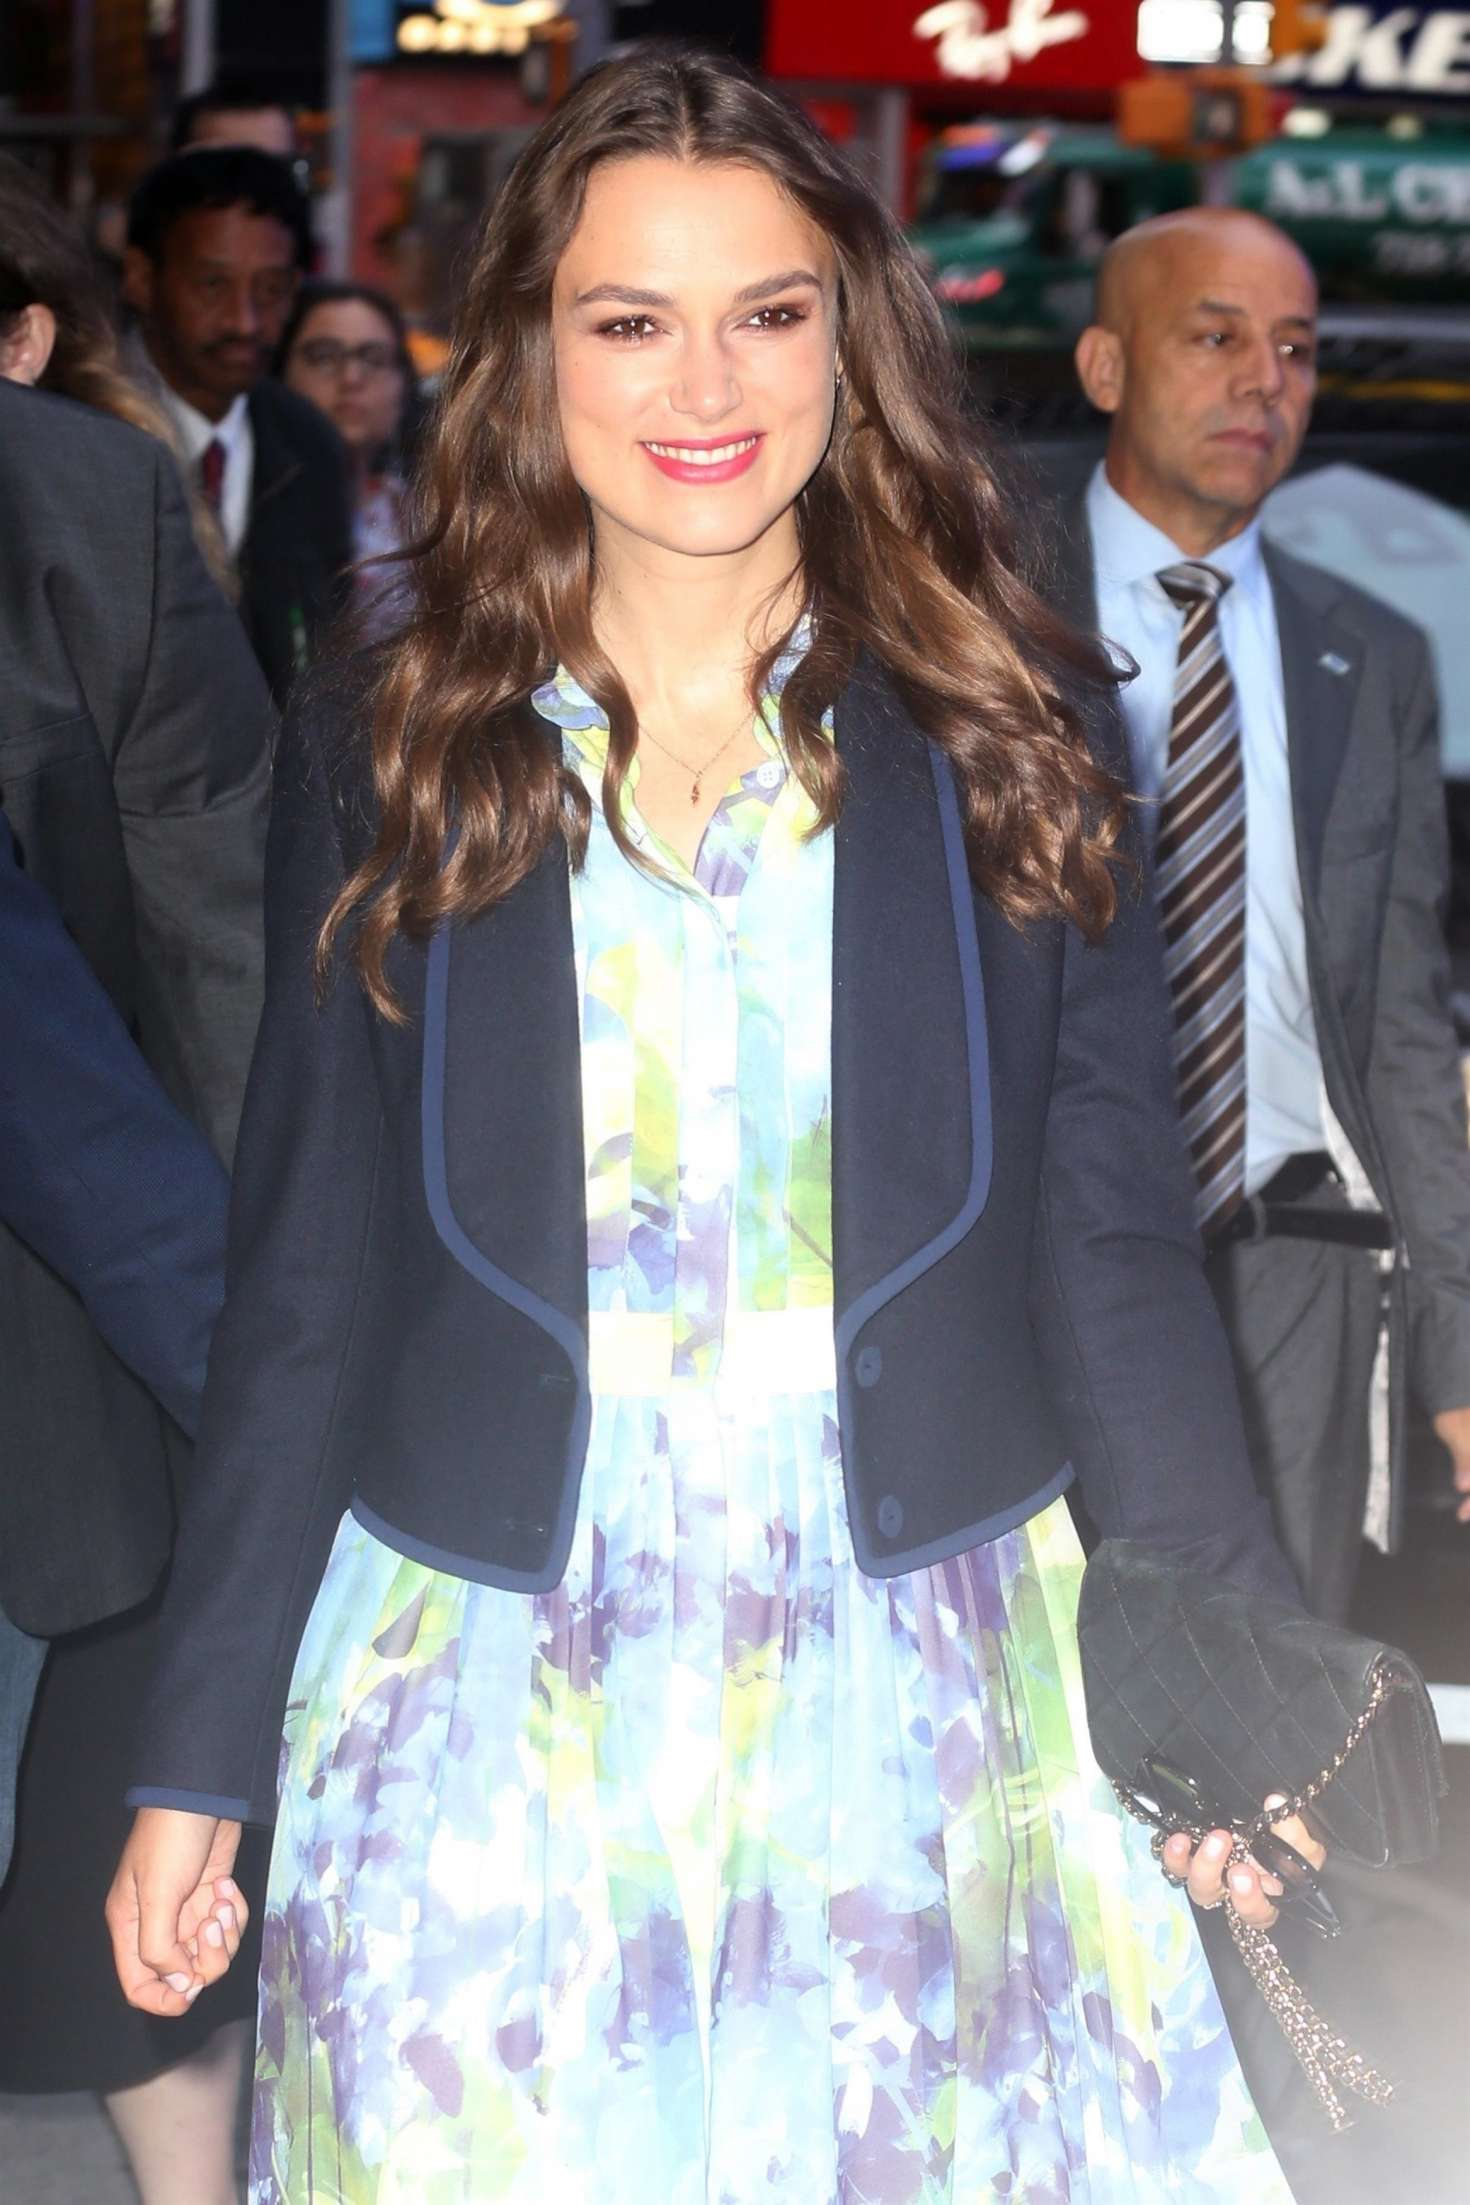 Keira Knightley - Arriving at 'Good Morning America' in New York